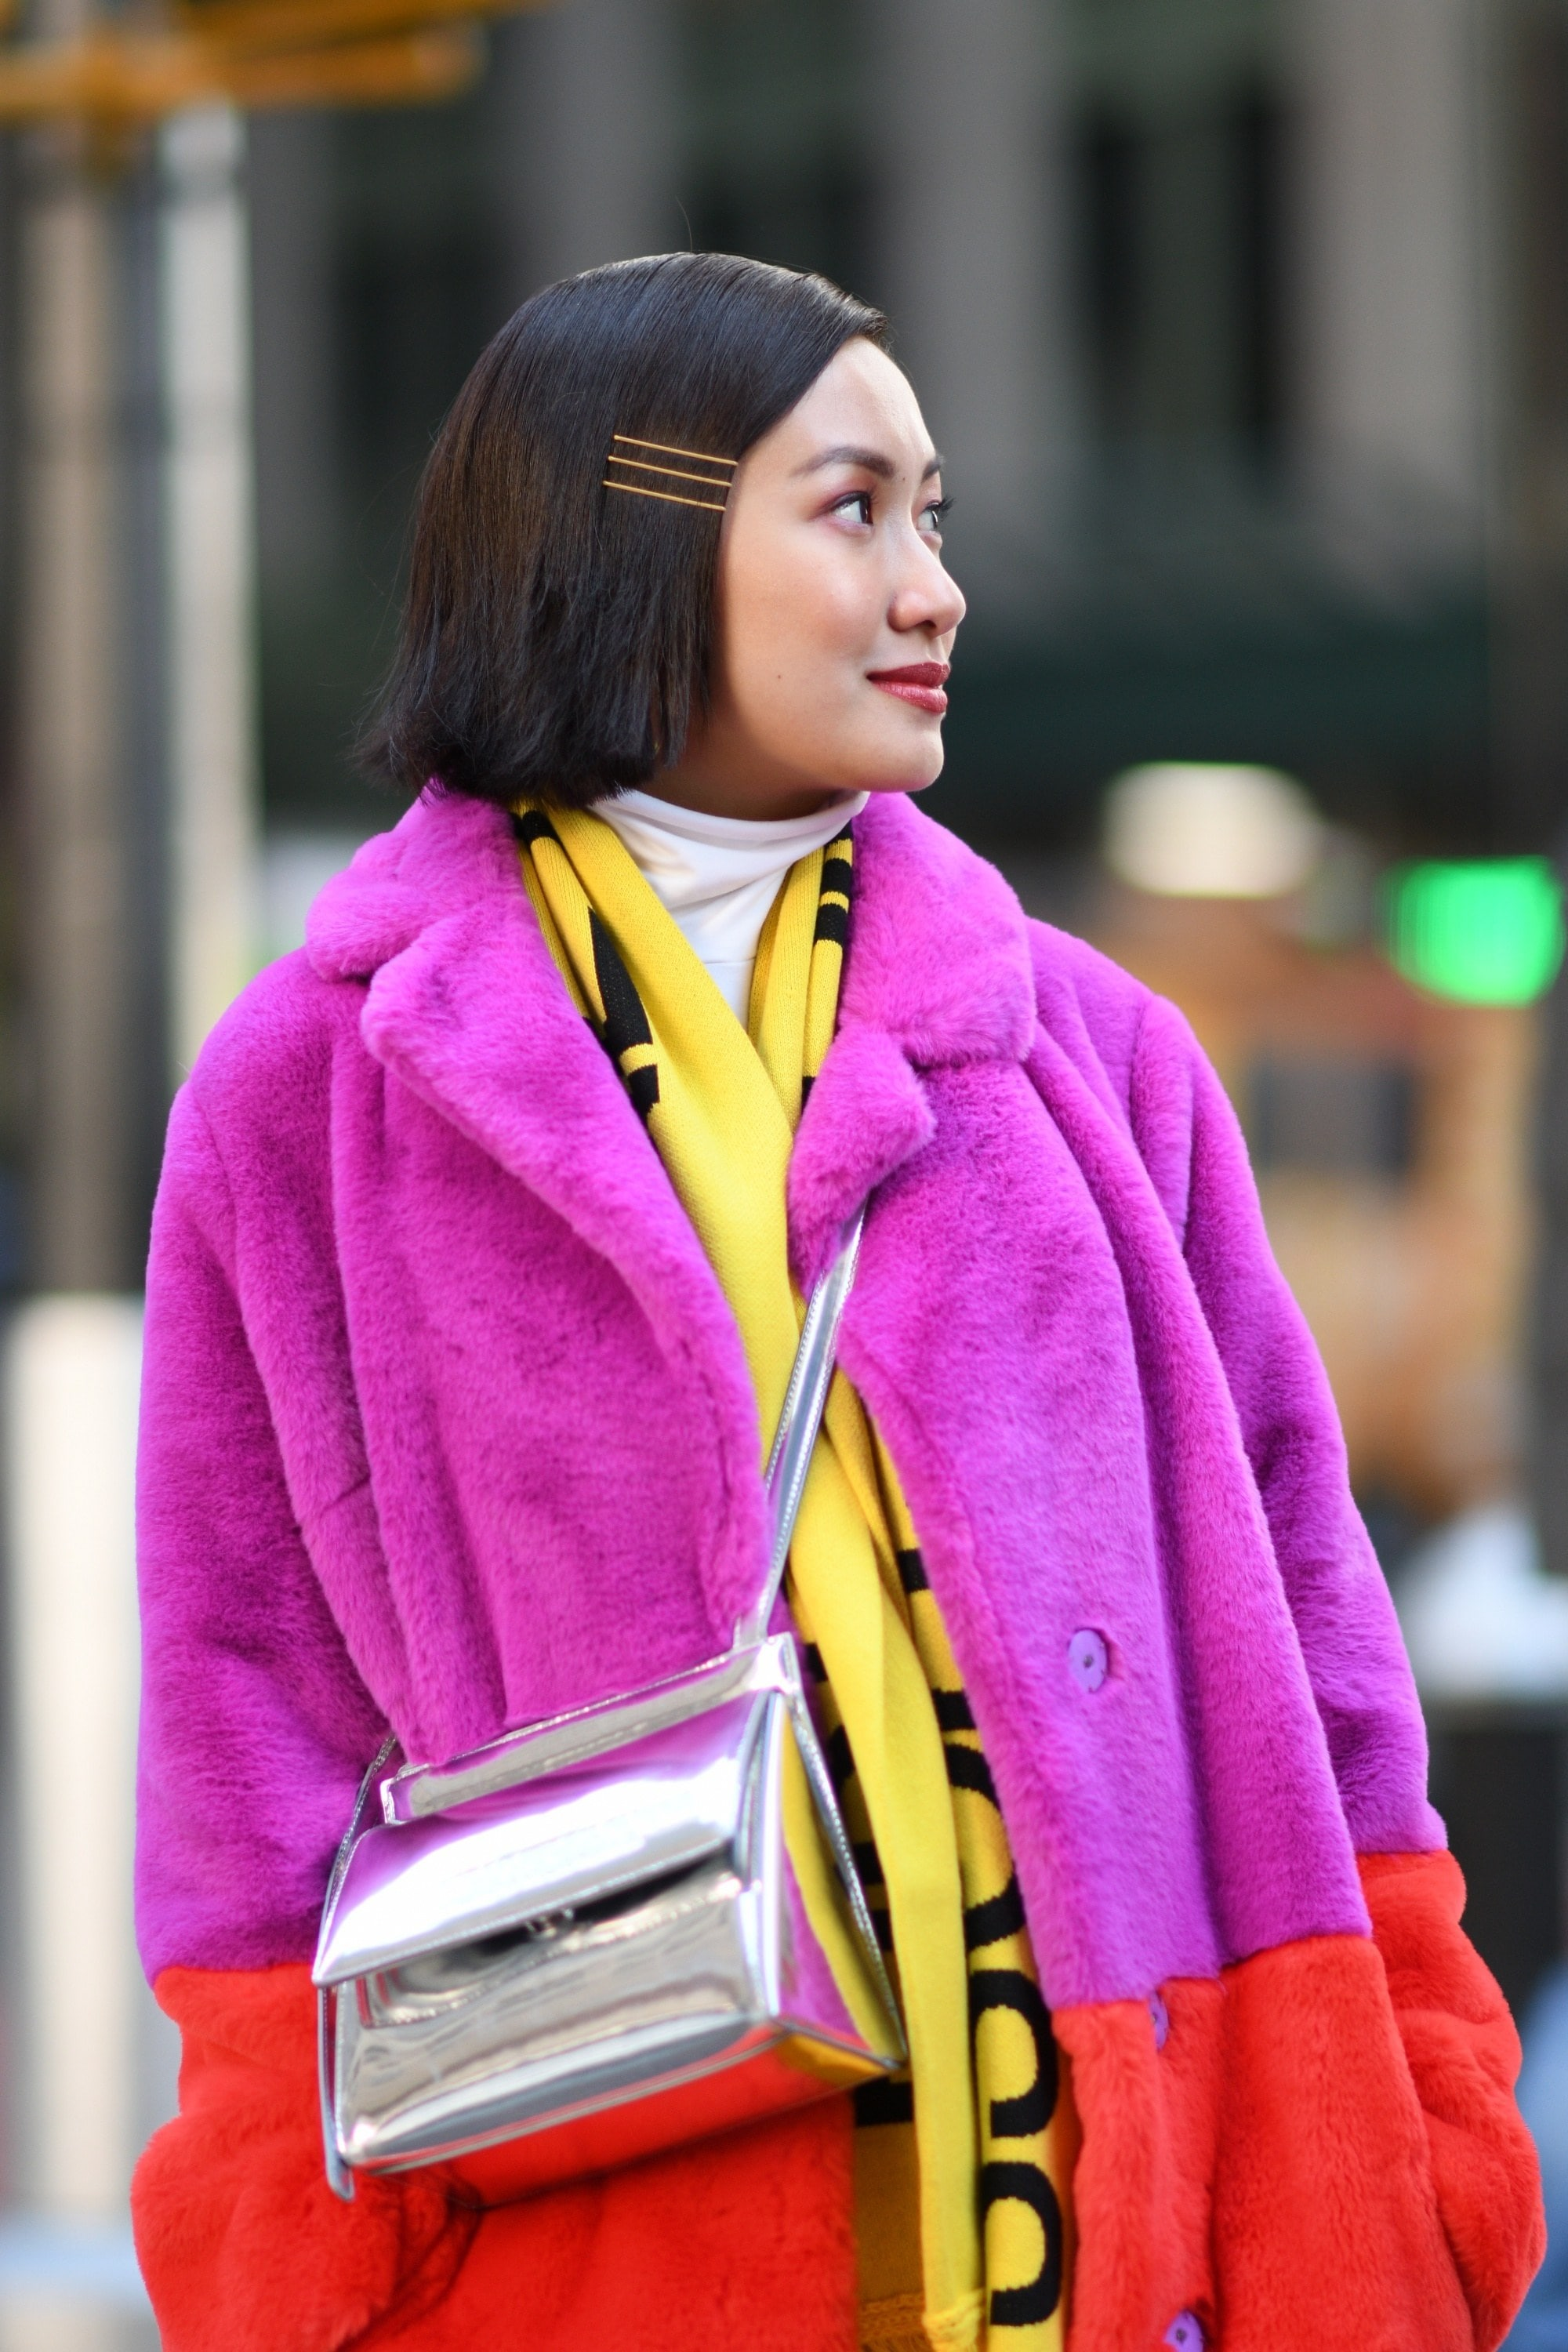 International Women's Day: Filipina woman with short black hair wearing a pink coat for NYFW